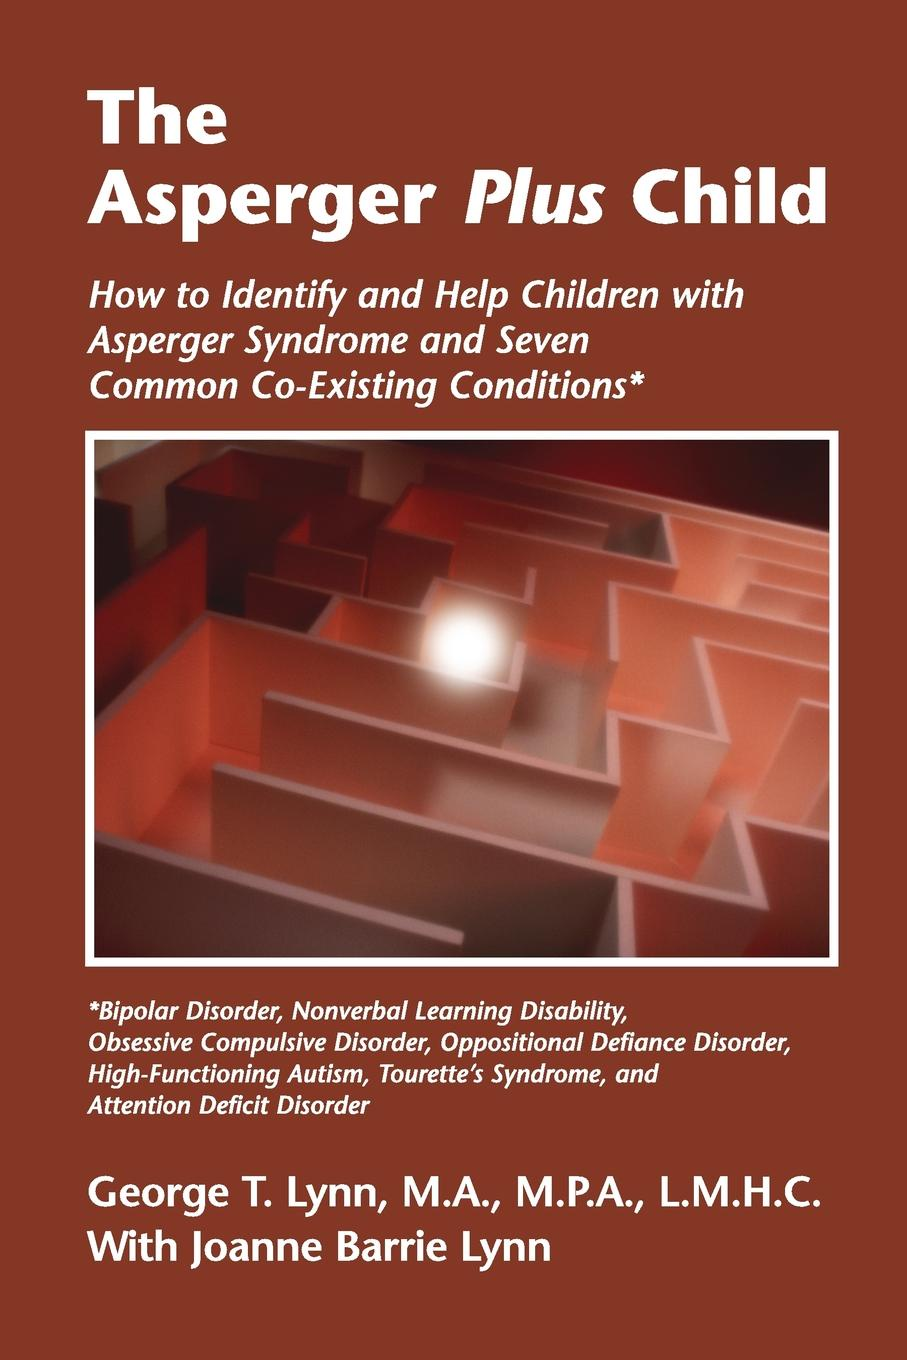 George T. Lynn MA MPA LMHC, Joanne Barrie Lynn The Asperger Plus Child. How to Identify and Help Children with Asperger Syndrome and Seven Common Co-Existing Conditions